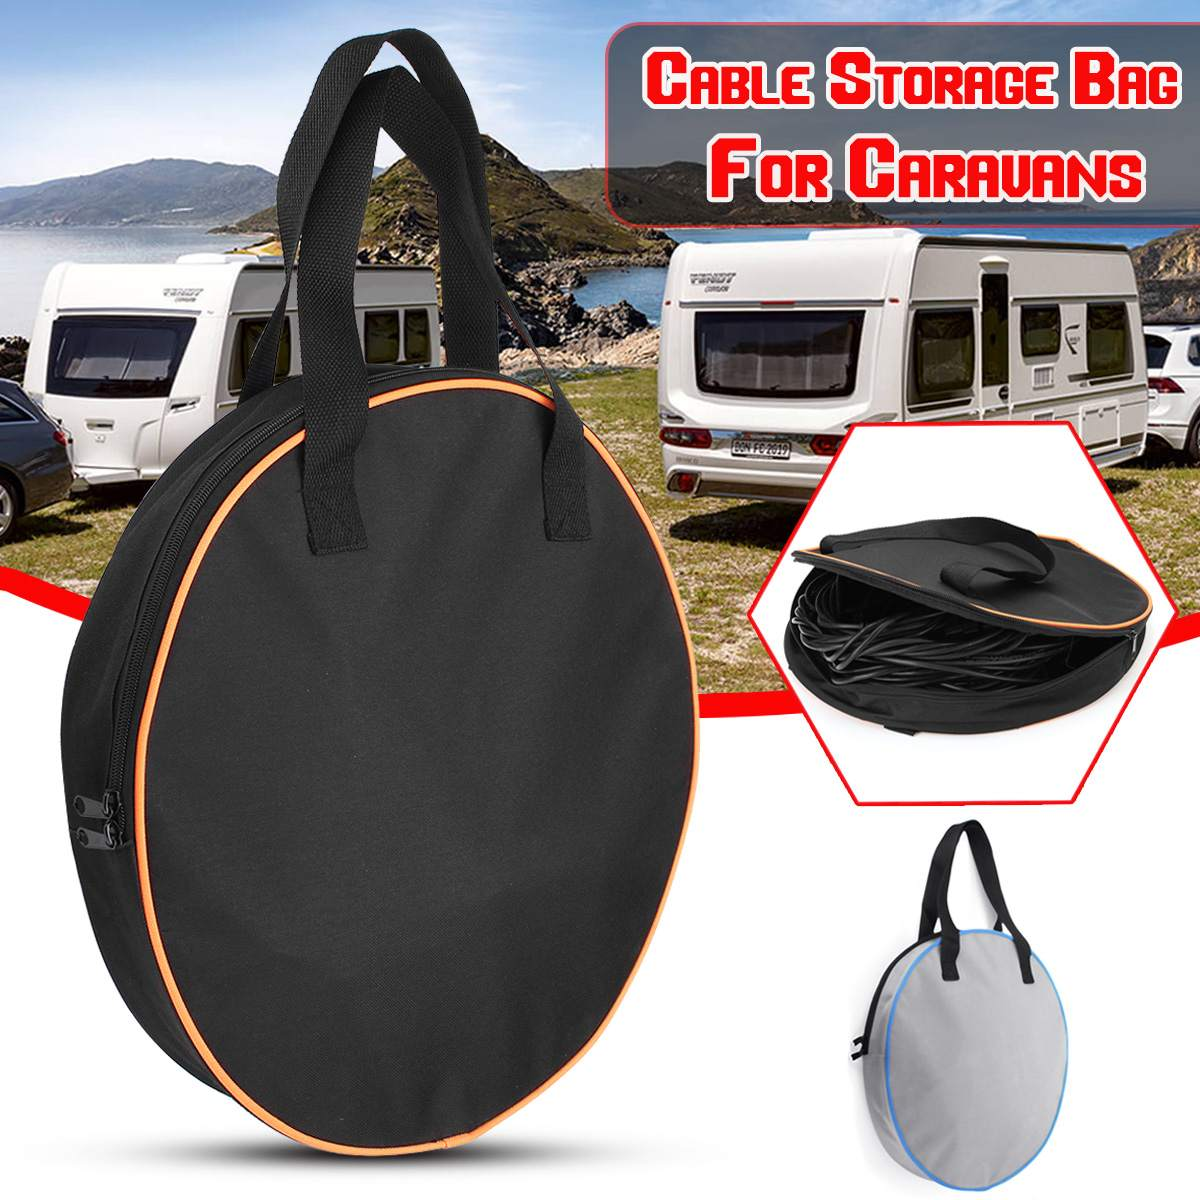 Car RV Caravans Wire Cable Harness Storage Bag Case Motorhome Gardening Portable Heavy Duty Cable Organizer